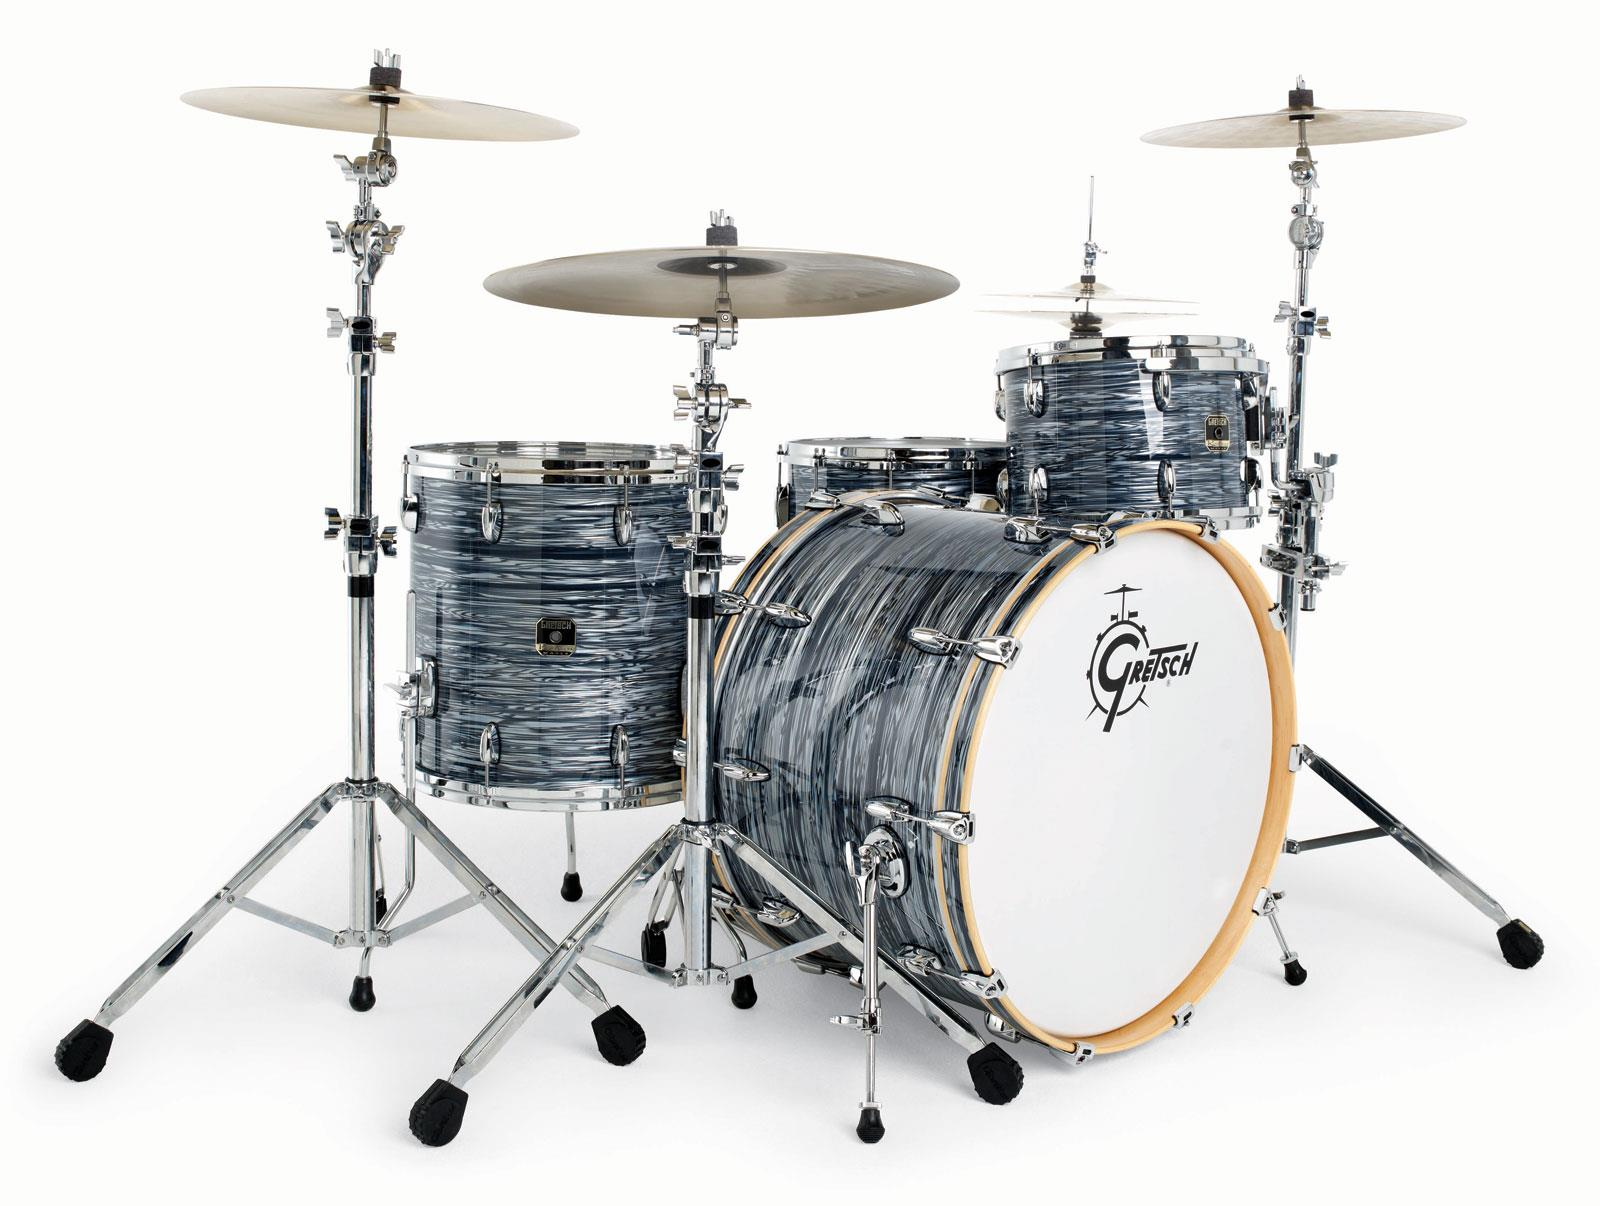 gretsch drums rnr643 renown maple silver oyster pearl keymusic. Black Bedroom Furniture Sets. Home Design Ideas